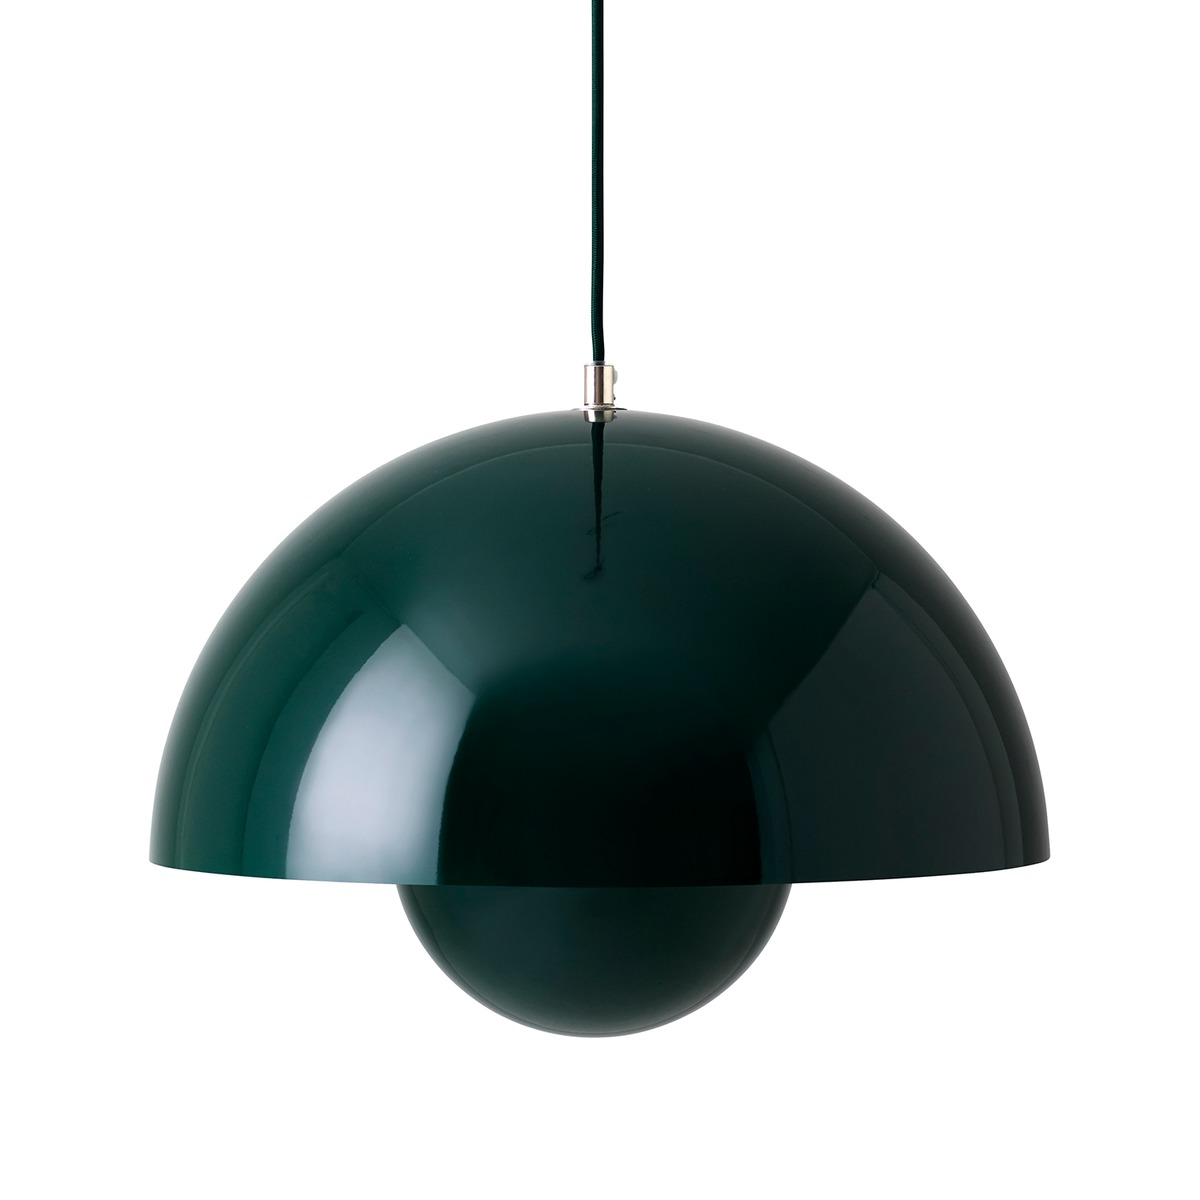 &Tradition Flowerpot VP7 pendant, dark green from &Tradition